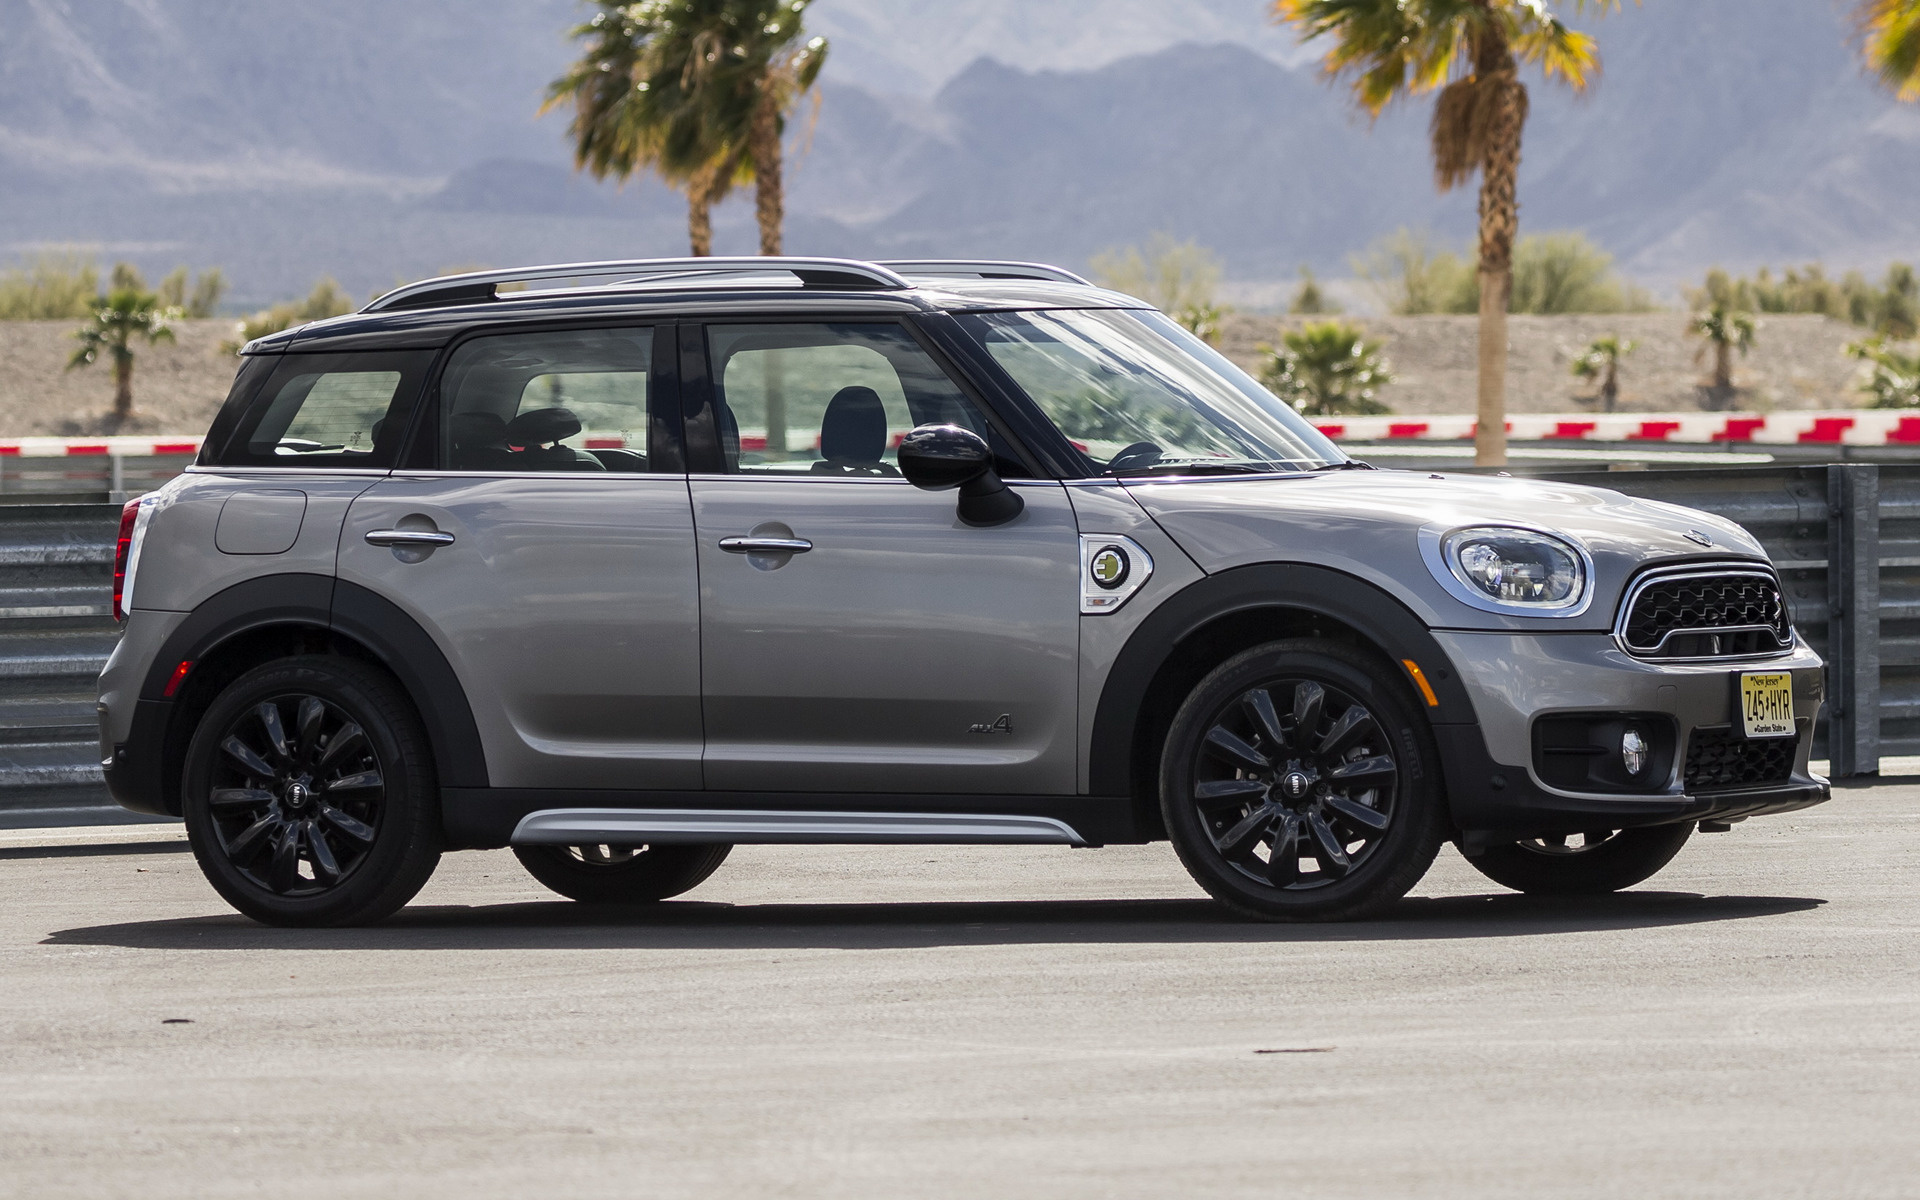 Who Makes Cadillac >> Mini Cooper S E Countryman (2018) US Wallpapers and HD Images - Car Pixel